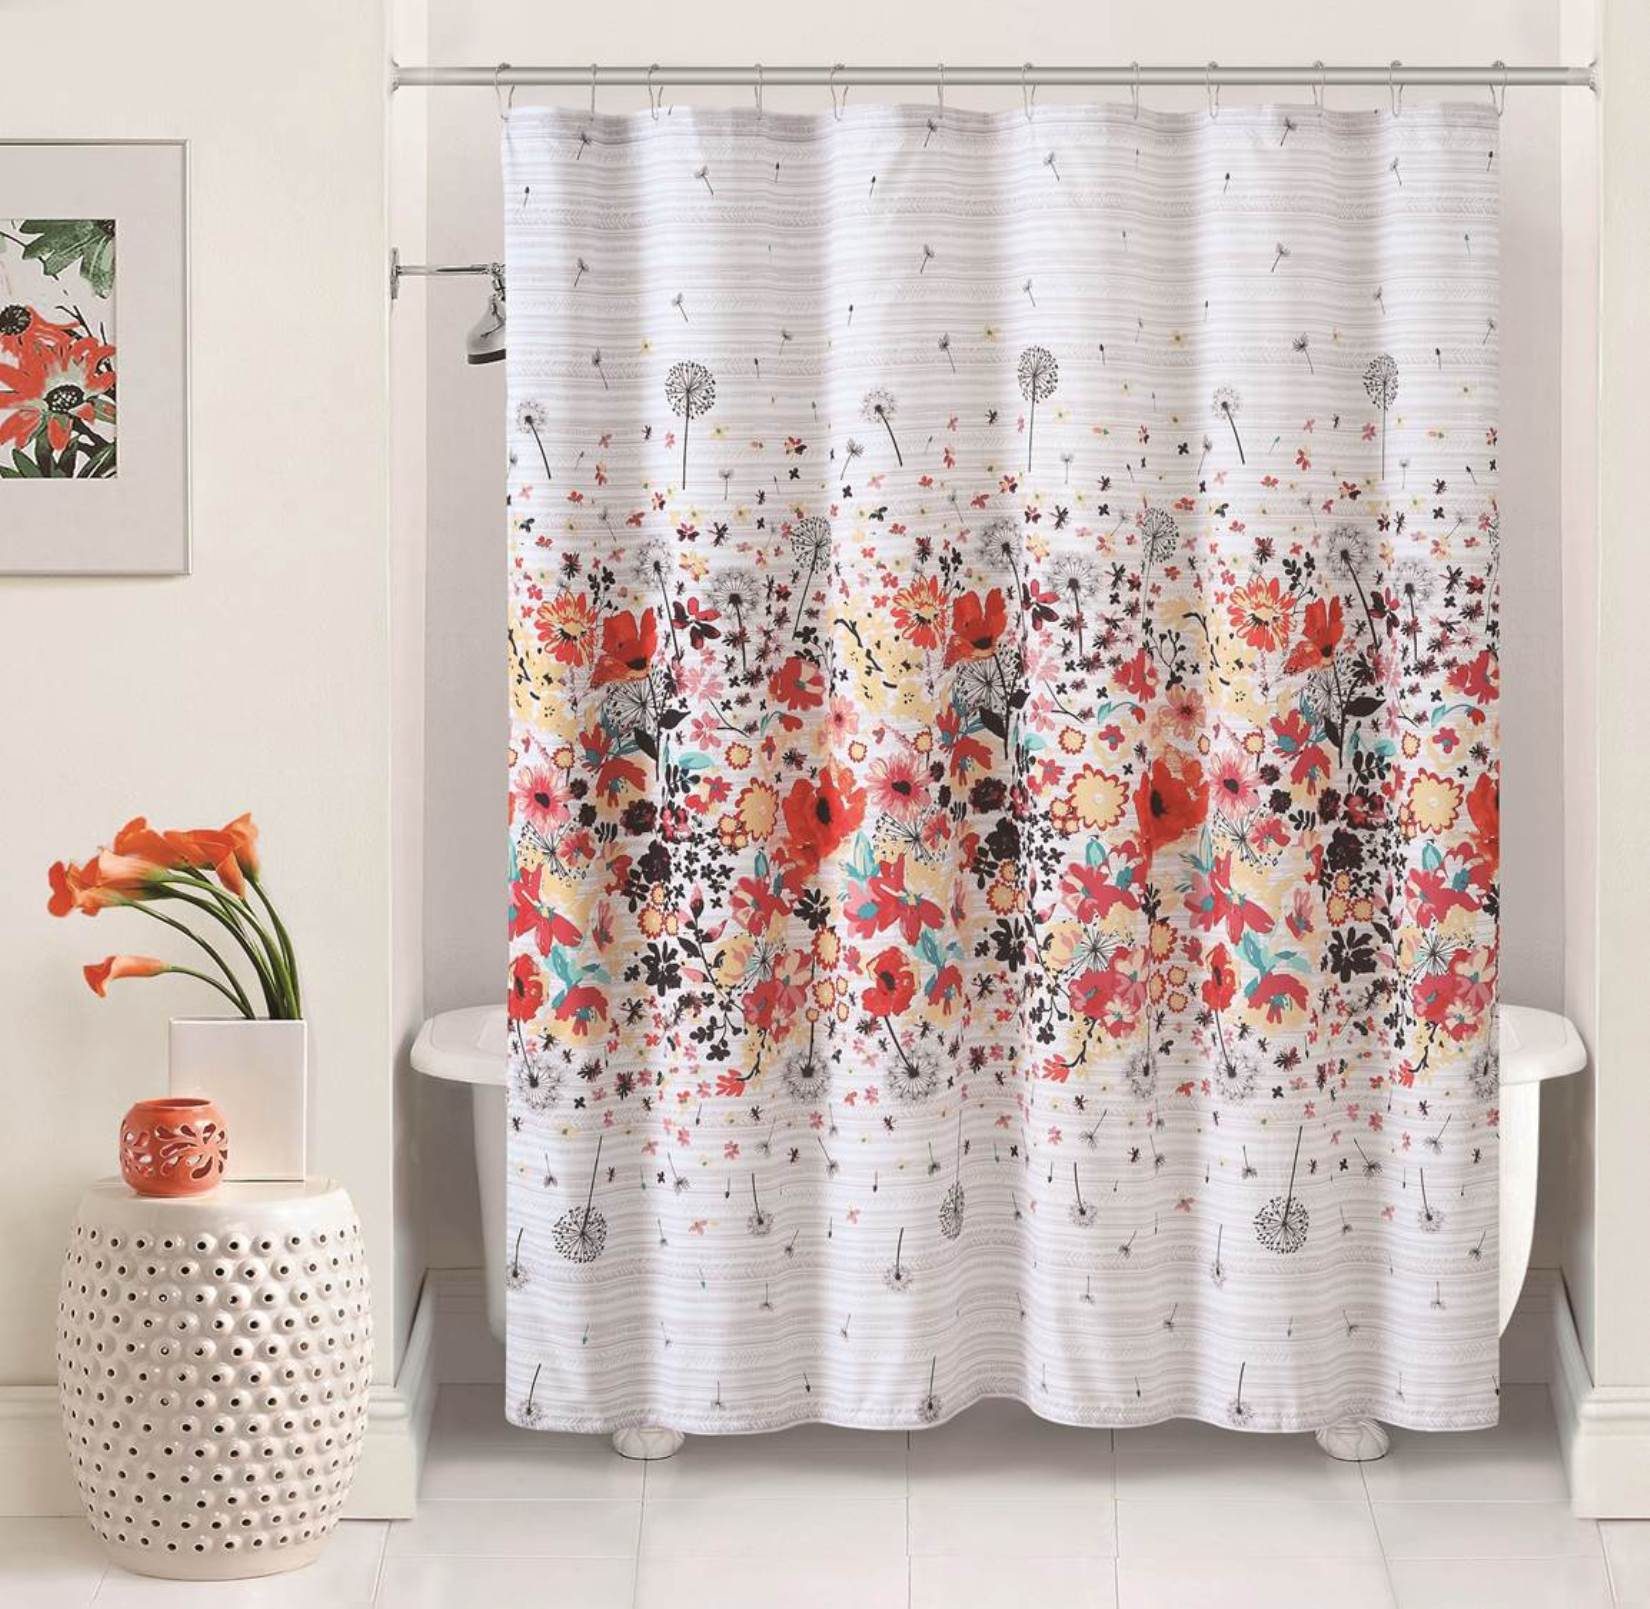 Magnolia 72x72 Shower Curtain Multicolor Home Bed